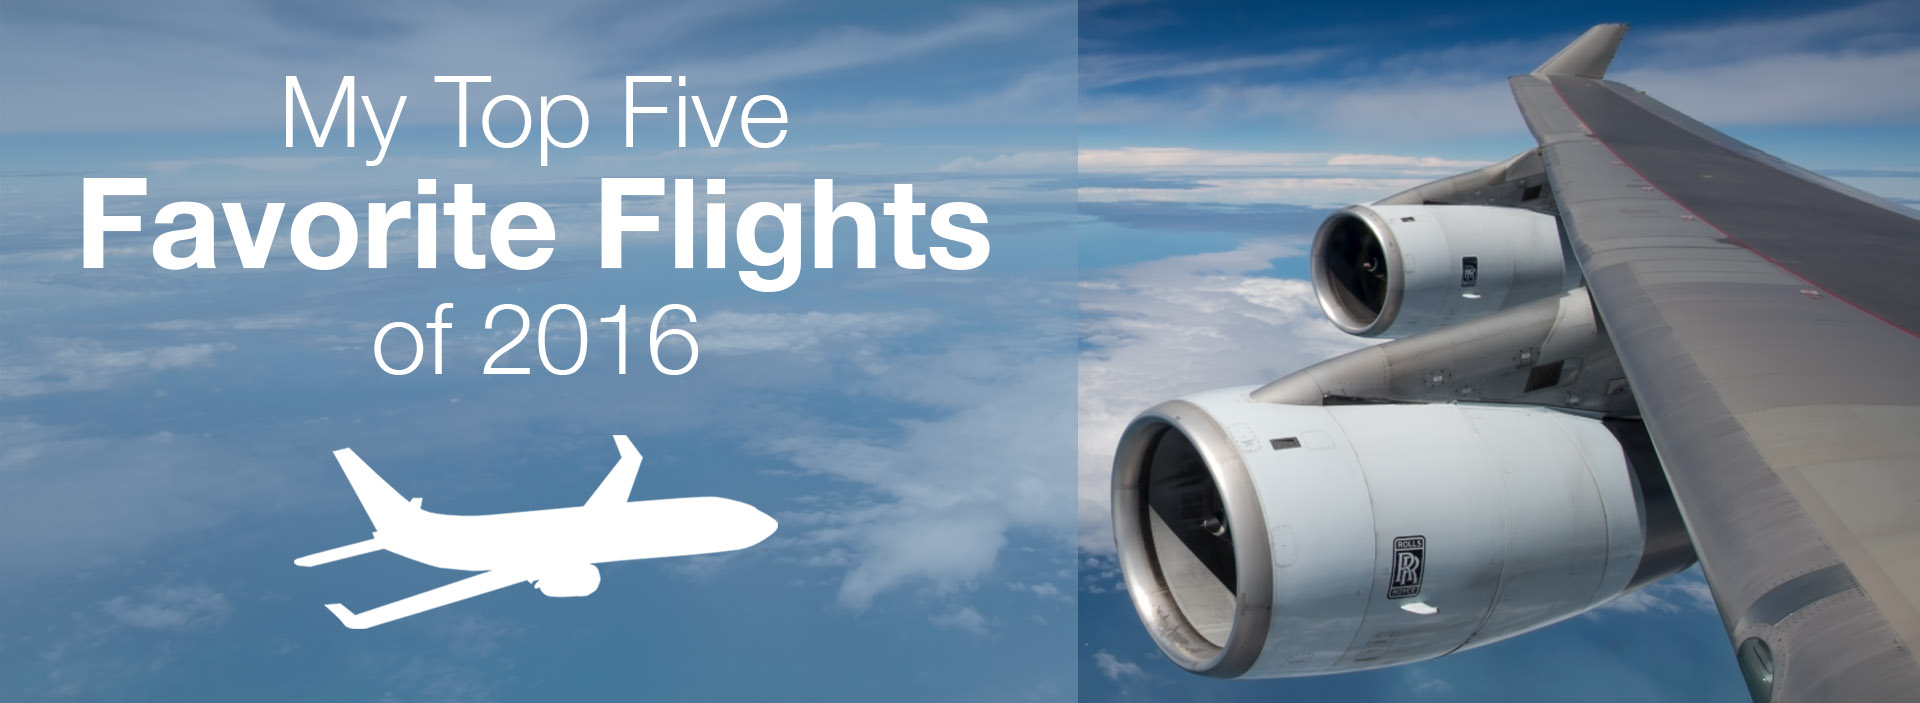 My Top 5 Favorite Flights of 2016